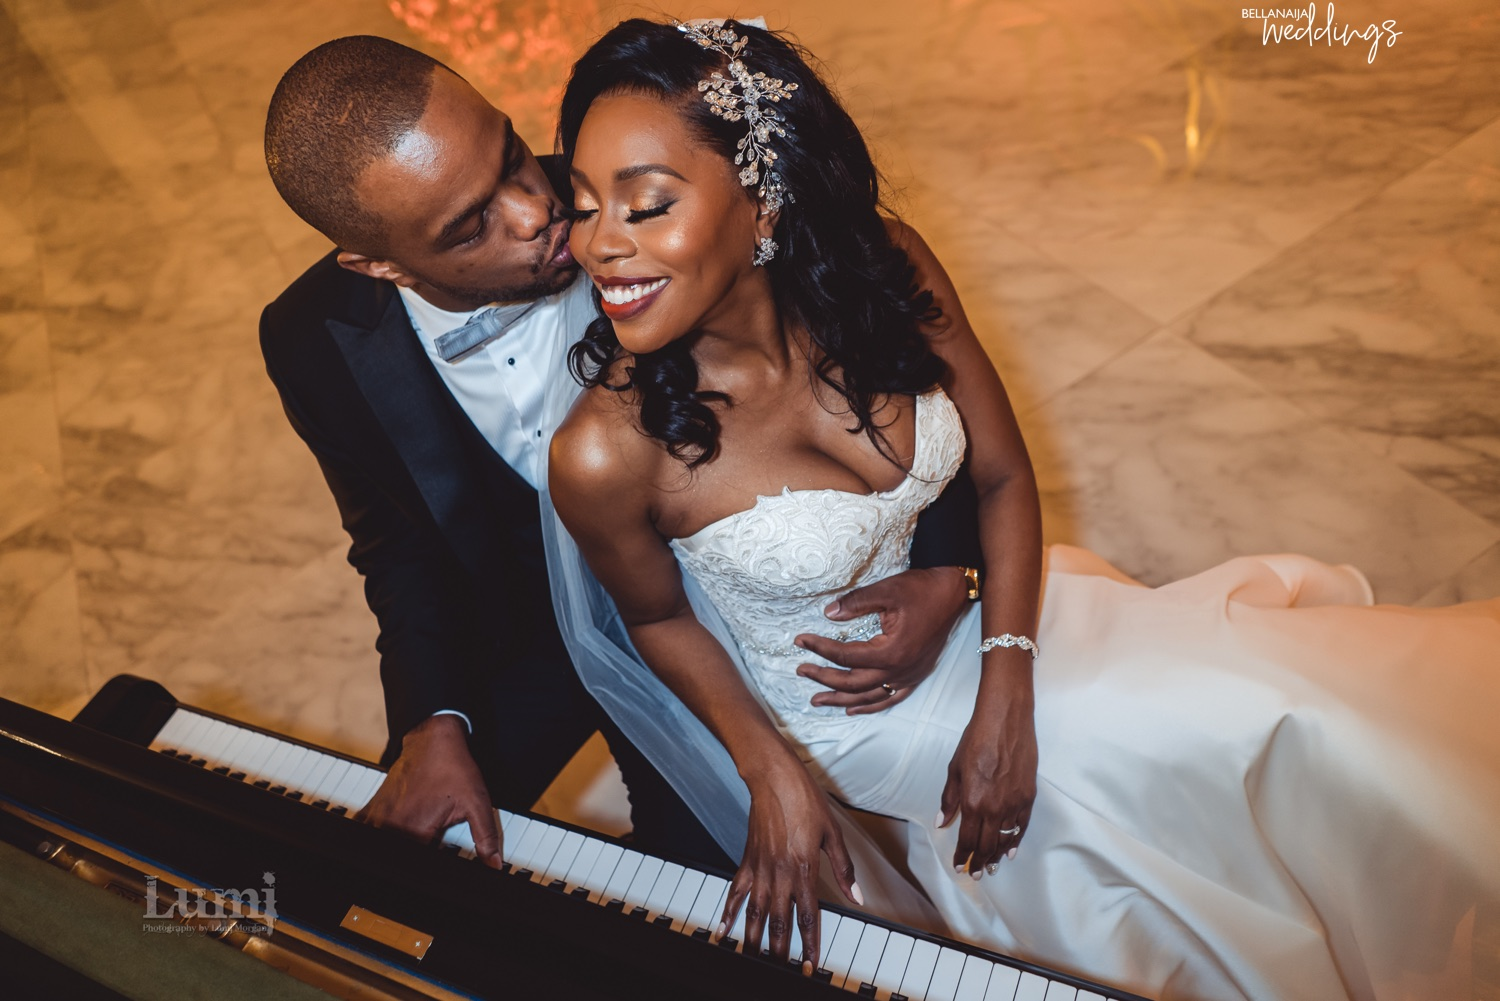 Timidi & Jamar's Outdoor Wedding is Just the Best Way to Start Your Day!